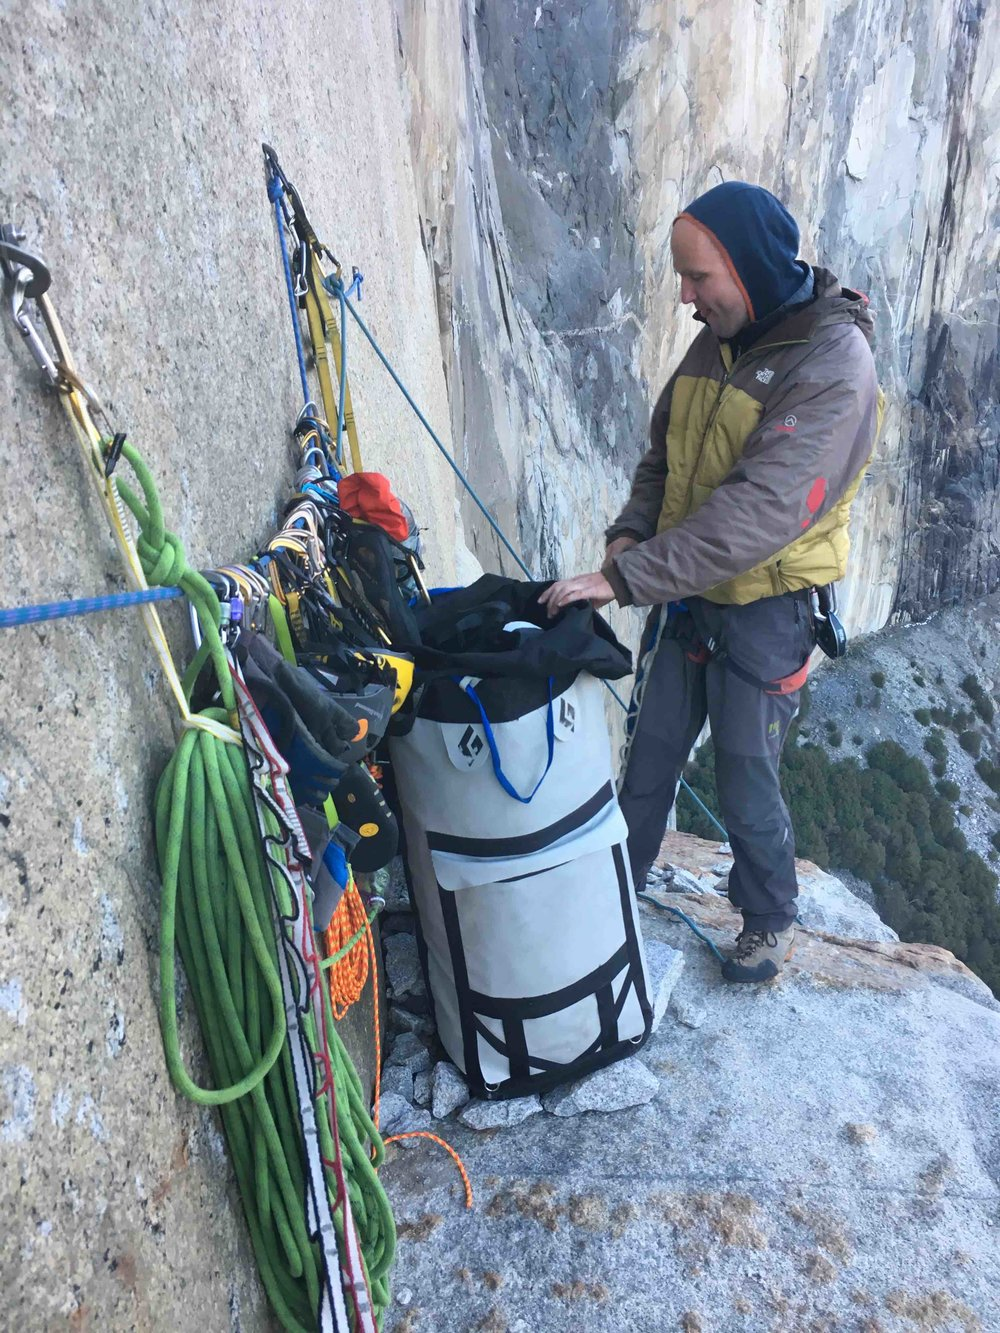 El Cap Tower. Check out the haul bag. Can you see the matador with the funny face wearing underwear?